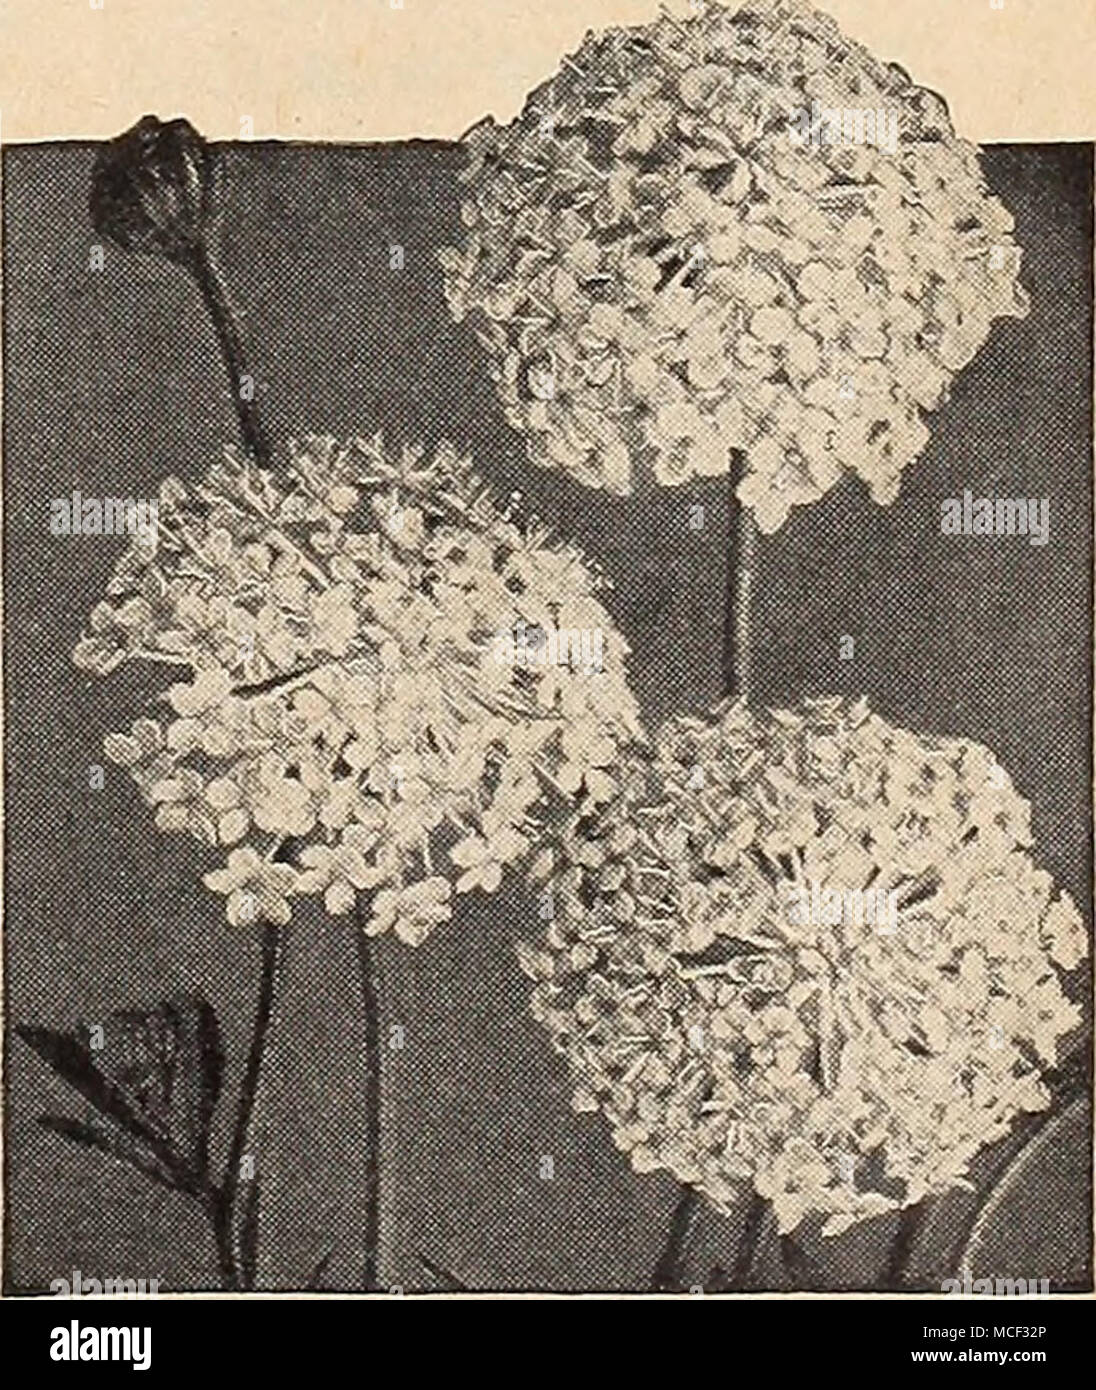 . Didiscus—Blue Lace Flower Didiscus—B/ue Lace Flower ® 2311 Coeruleus. Showy, lacy, light lavender flower heads borne profusely from July to frost. For borders and cutting. 18 inches. Pkt. 10c; large pkt. 30c. Dreer's Flower Seeds have won many prizes for our customers. ] ® =Annual; ® = Biennial; |hhp| = Half-Hardy Perennial; gPl = Hardy Perennial; [tp1= Tender Perennial £7 - Stock Image